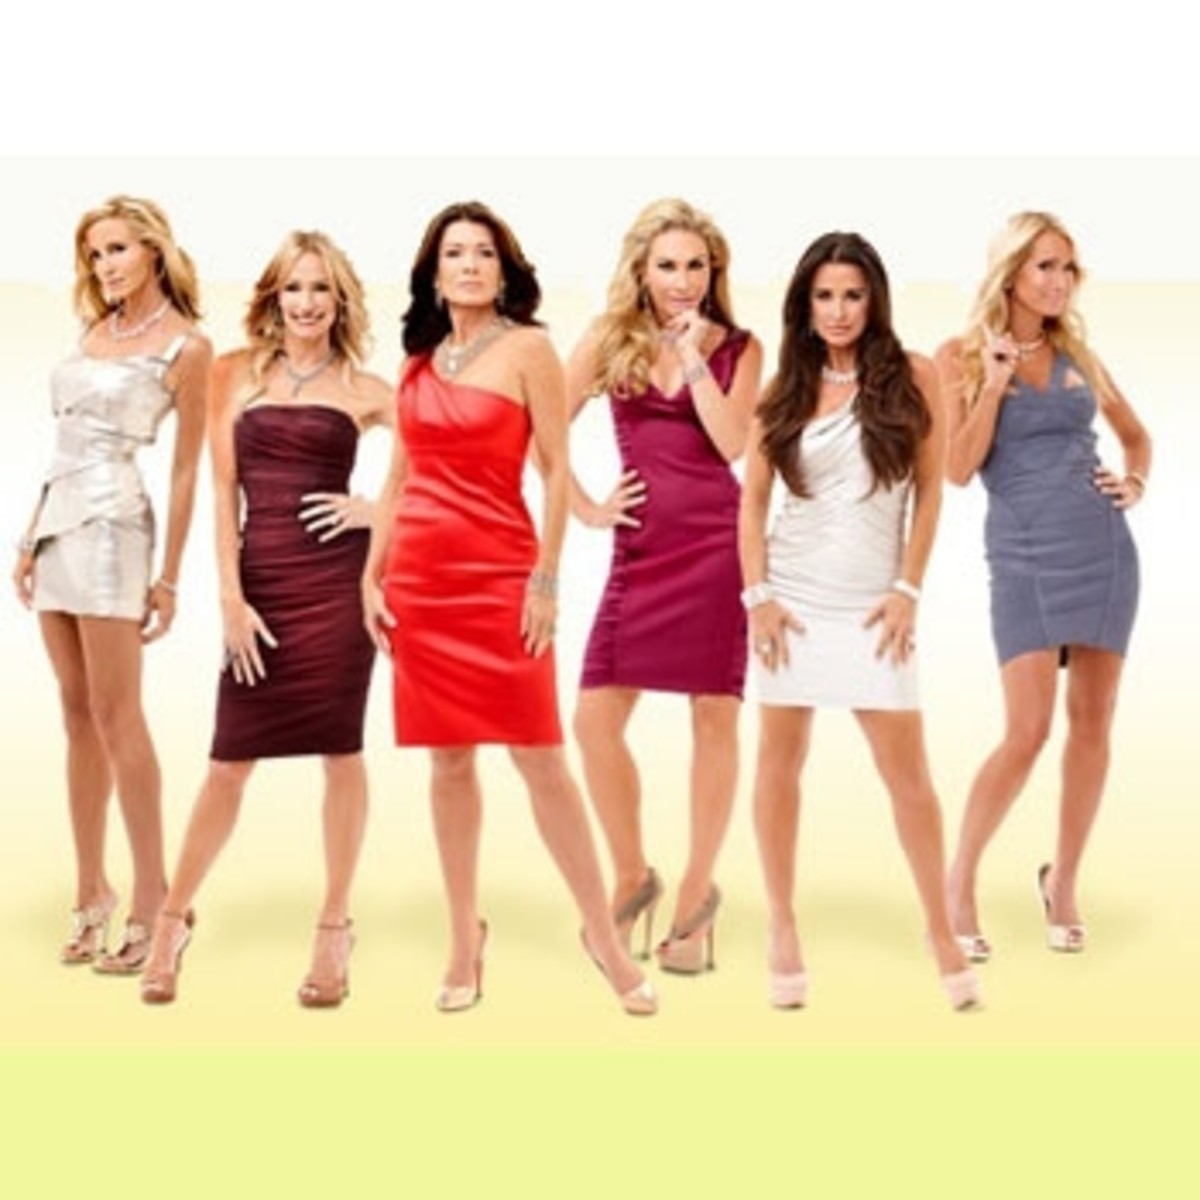 Can't get enough of the Beverly Hills ladies!